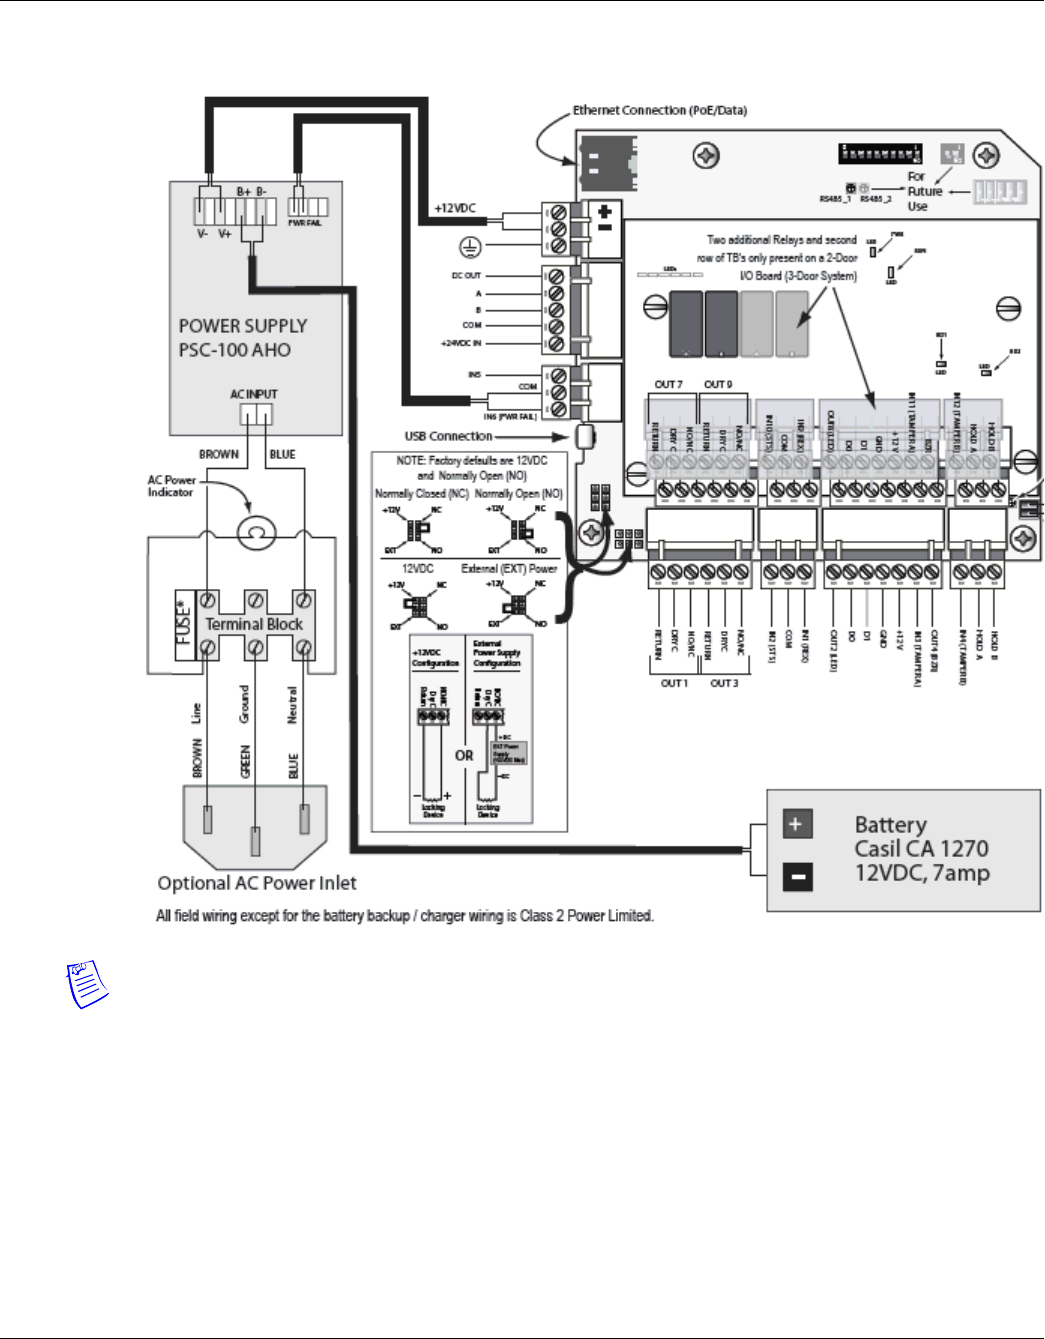 59E4B Netaxs Single Door Wiring Diagram | Digital Resources on lift master controls wiring diagram, doorbell wire connection diagram, lincoln arc welder outlet wiring diagram, ford 2002 window wiring diagram, build a control diagram, welder generator wiring diagram,